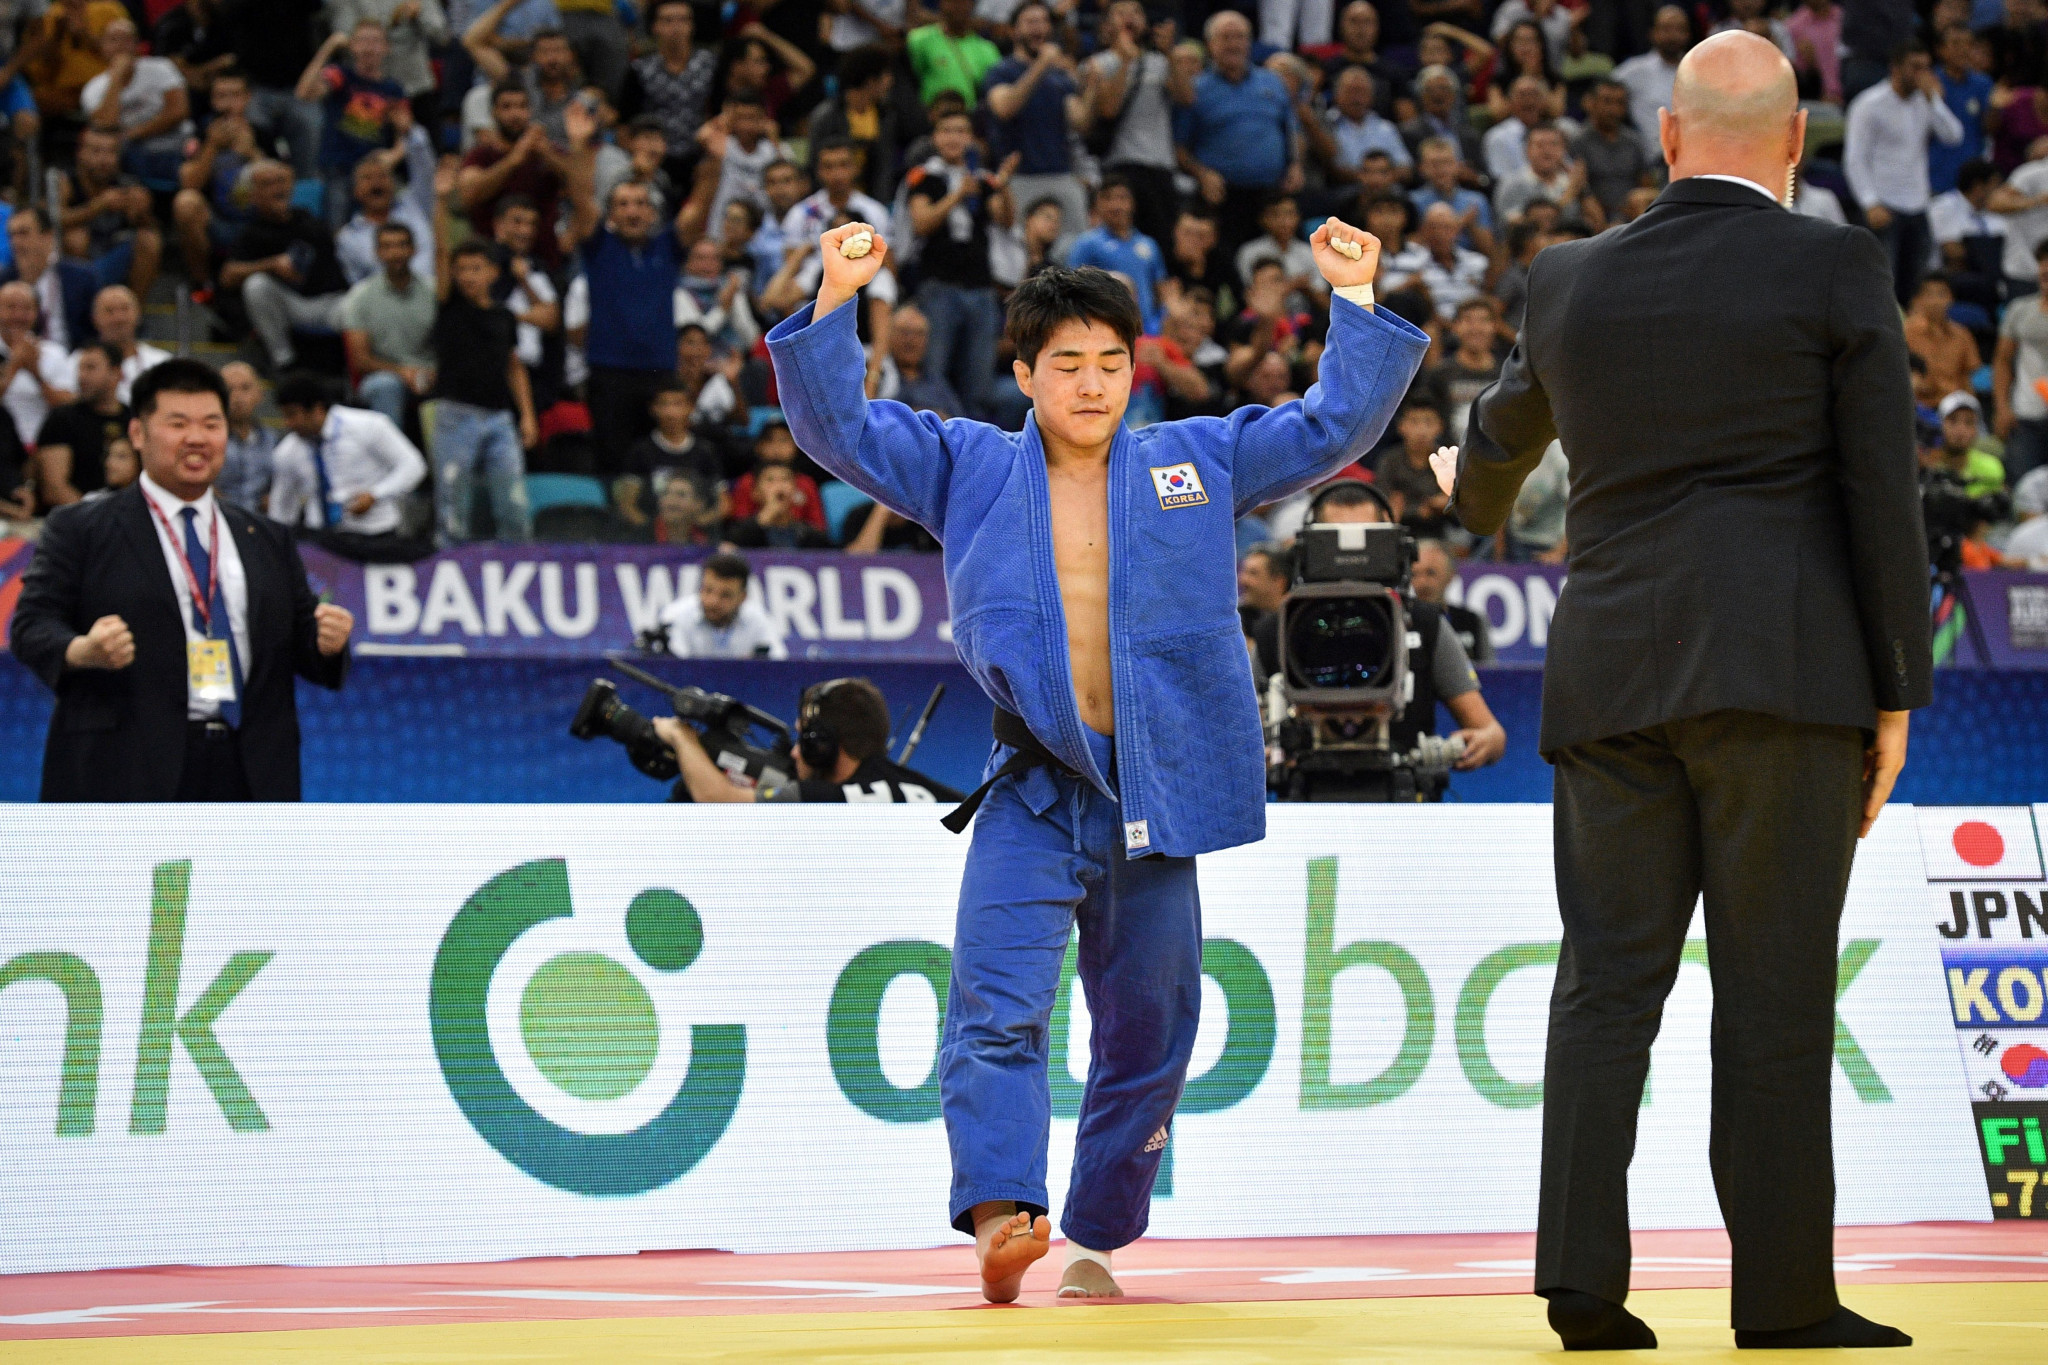 Reigning world champion An Chang-rim won gold in the men's under 73kg final ©Getty Images